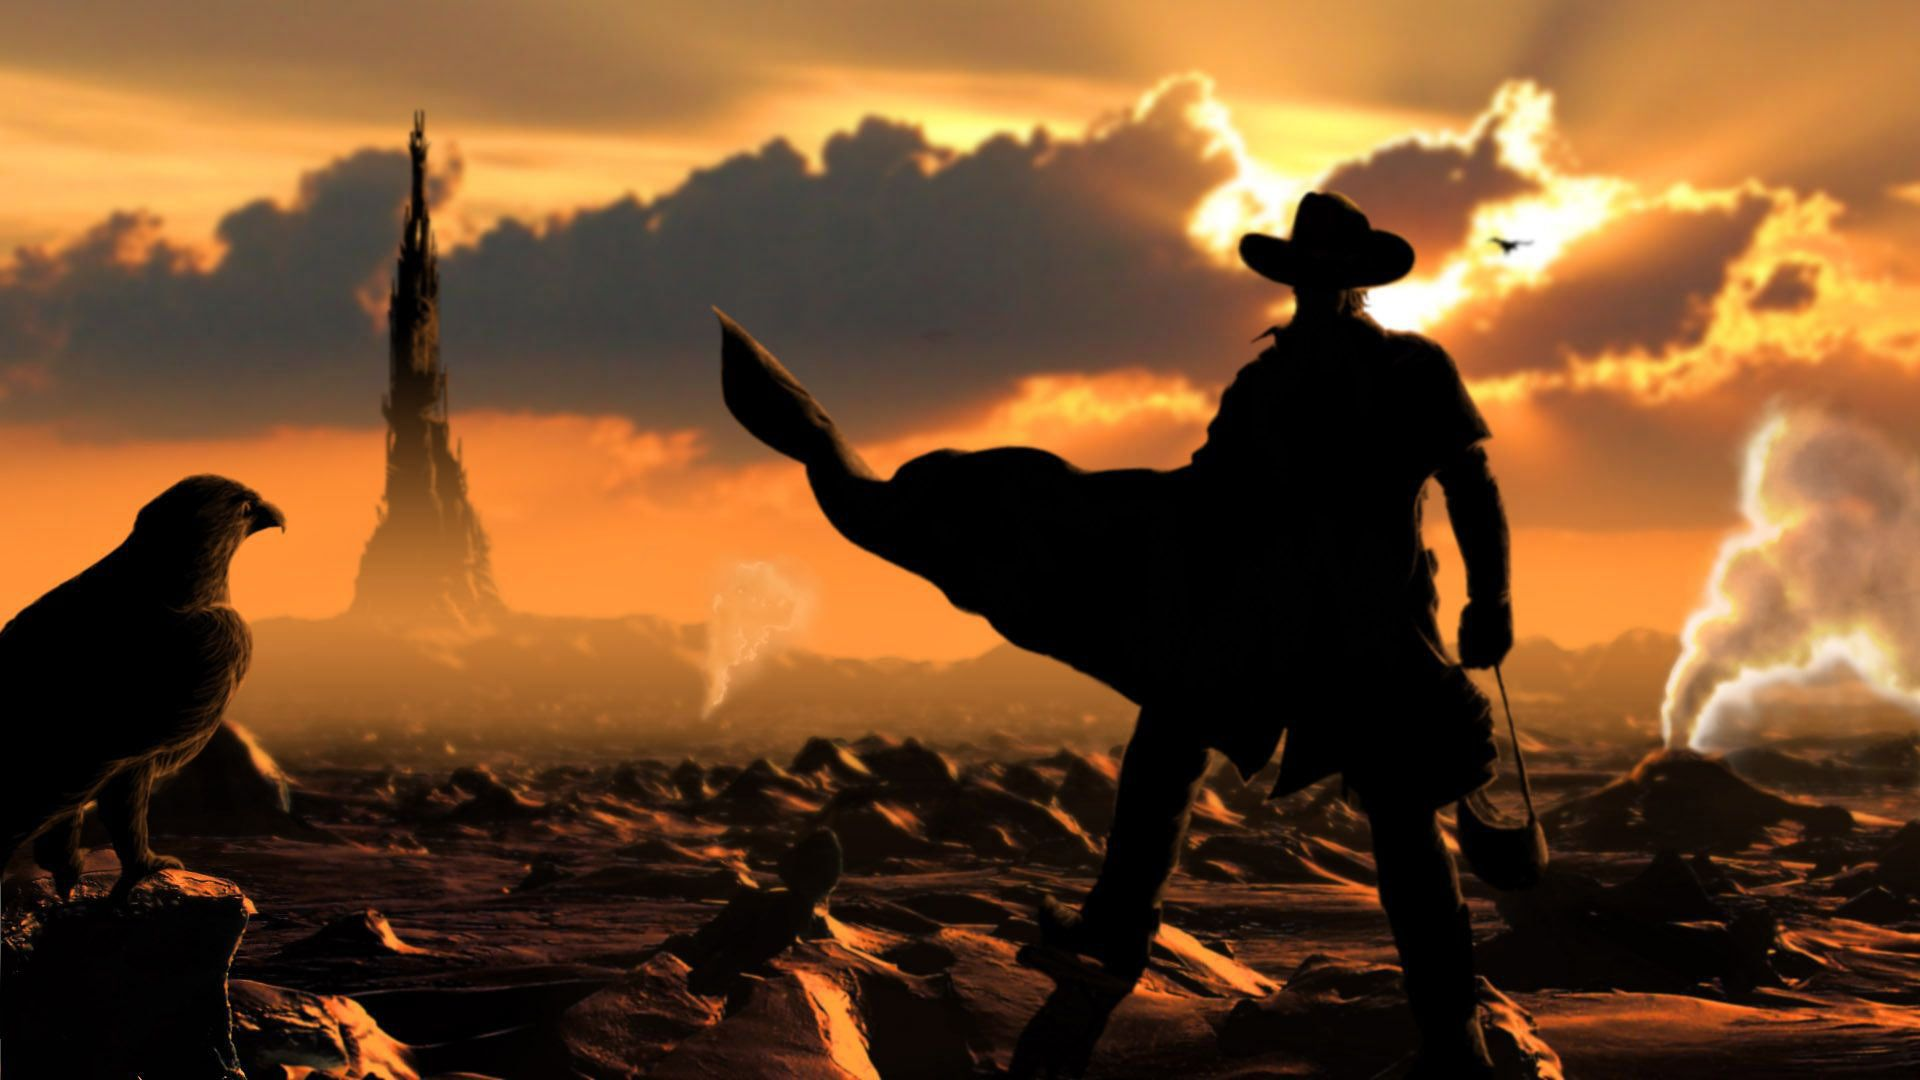 The Dark Tower | Stephen King Wiki | FANDOM powered by Wikia